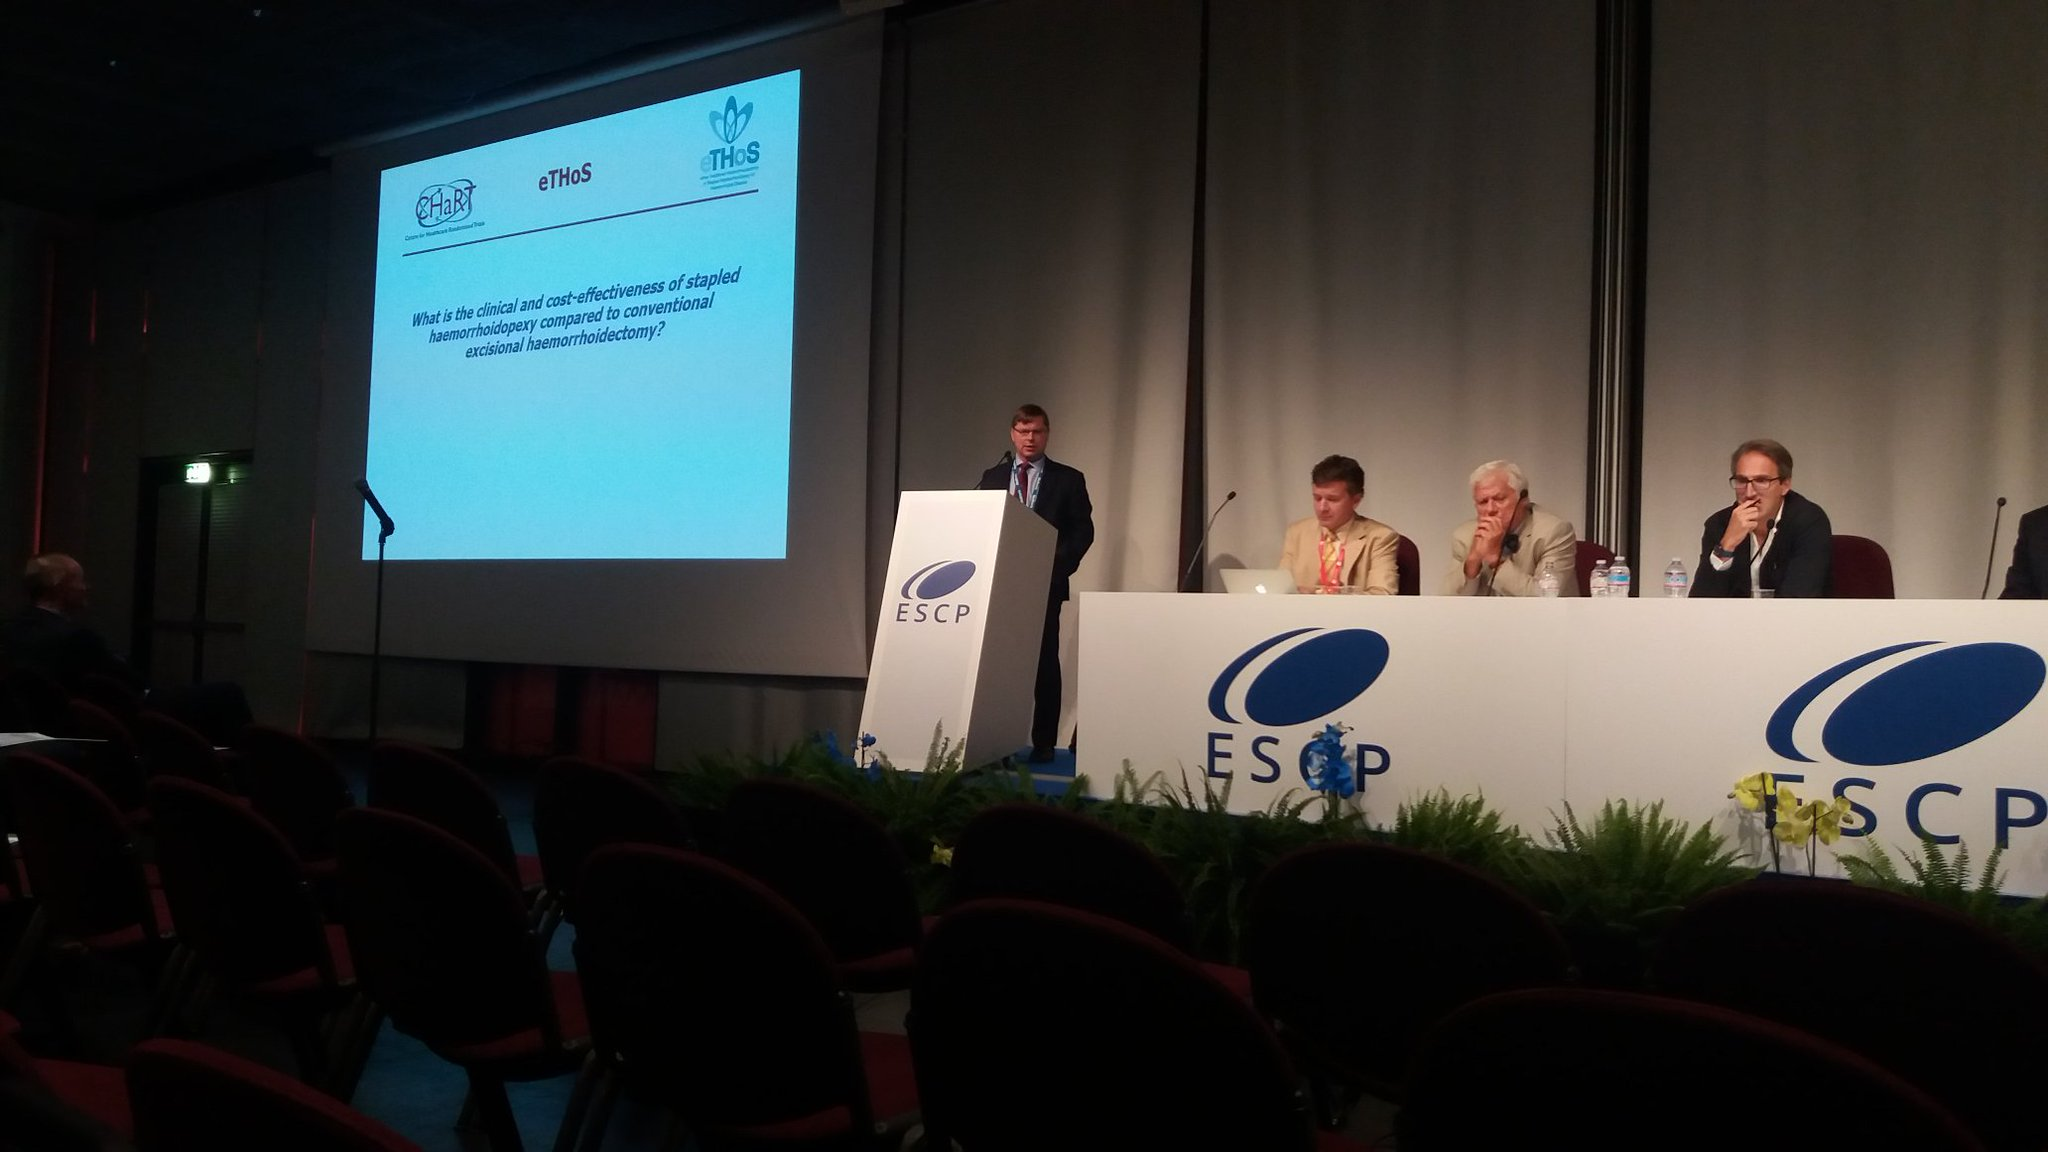 eTHoS haemorrhoidectomy trial presented by @Watsoninverness at @escp_tweets #escp2016 https://t.co/AnCfYWwsrx